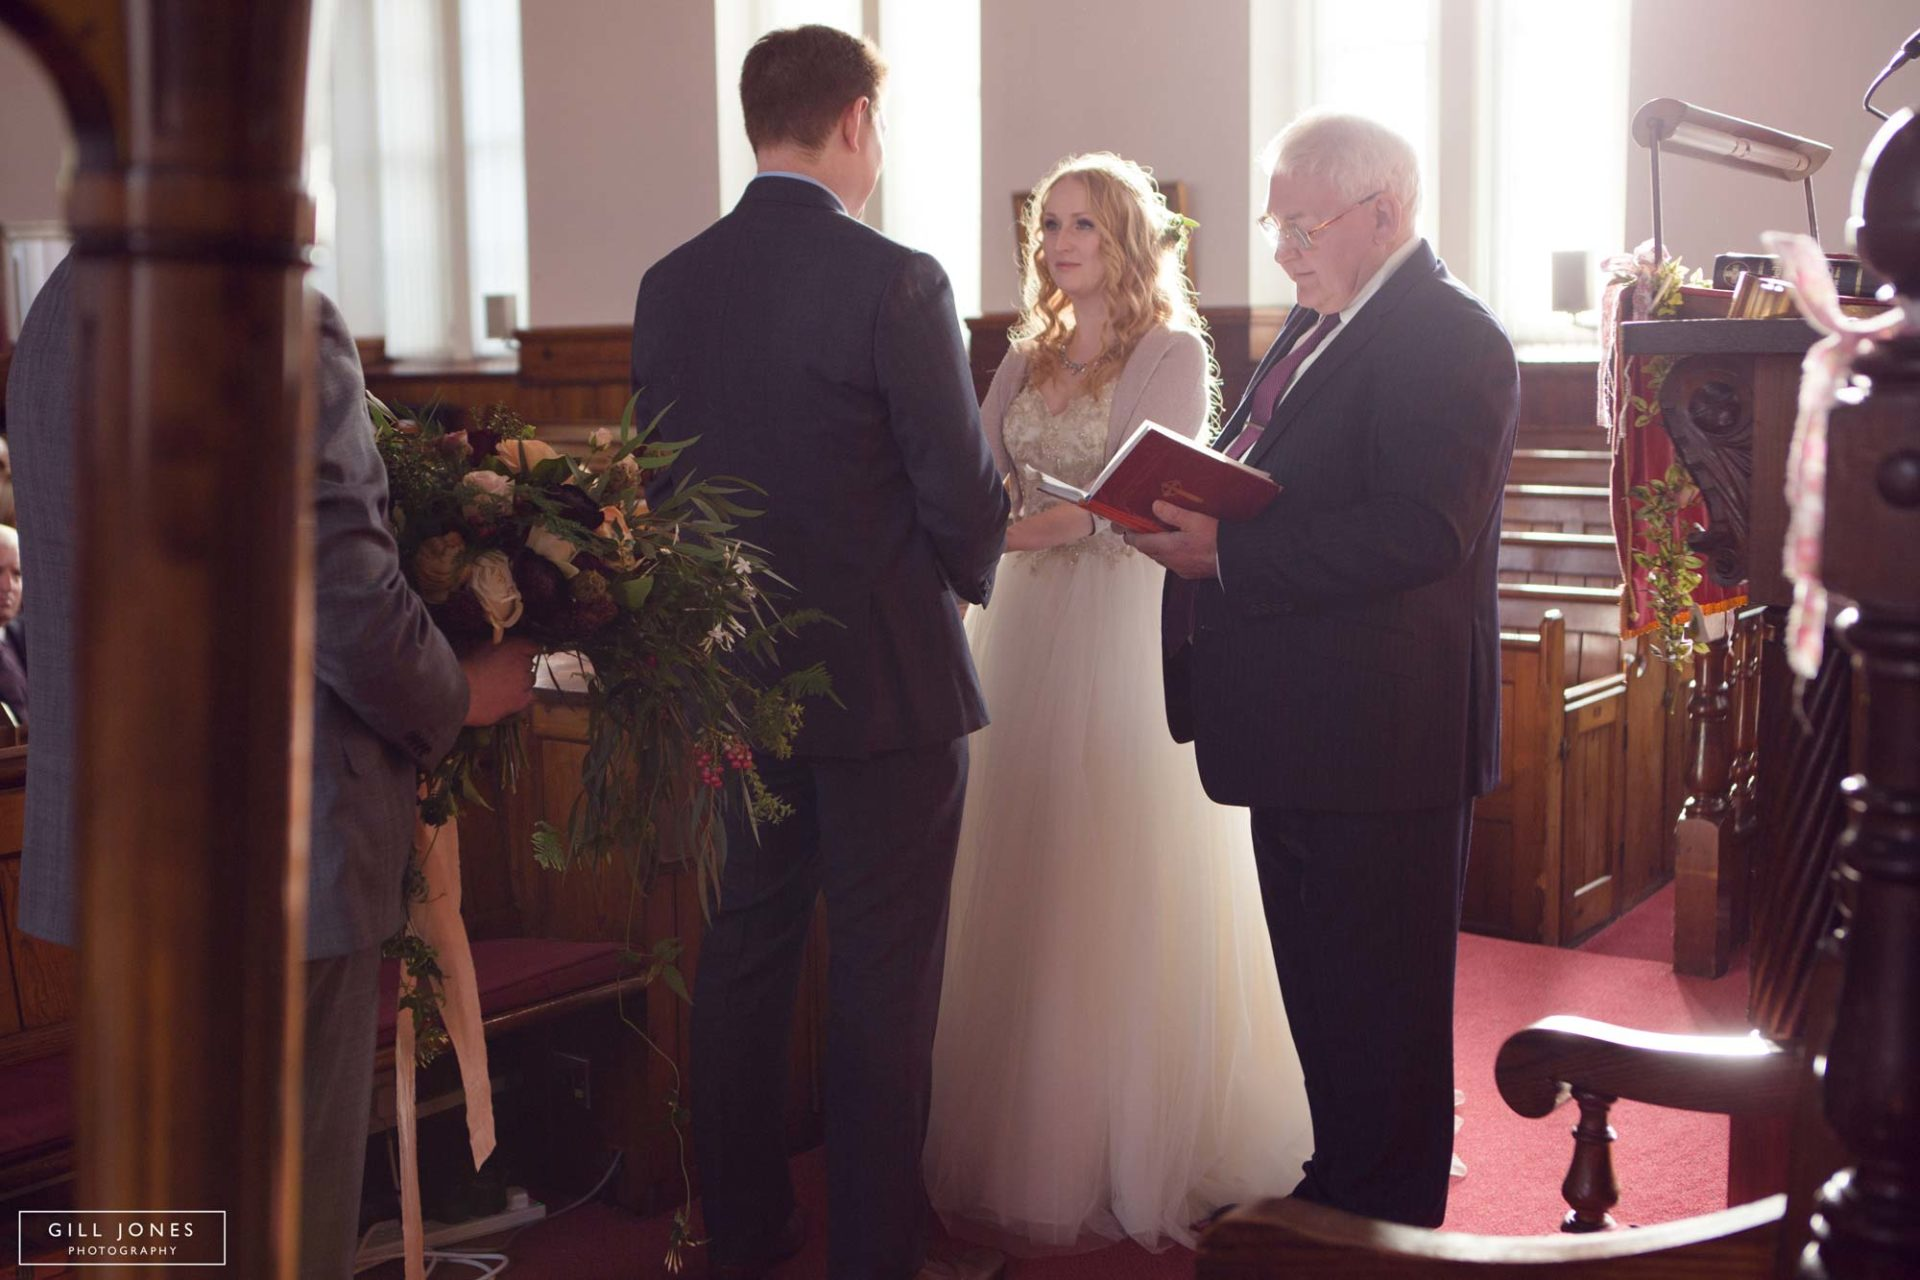 the bride and groom exchanging their vows